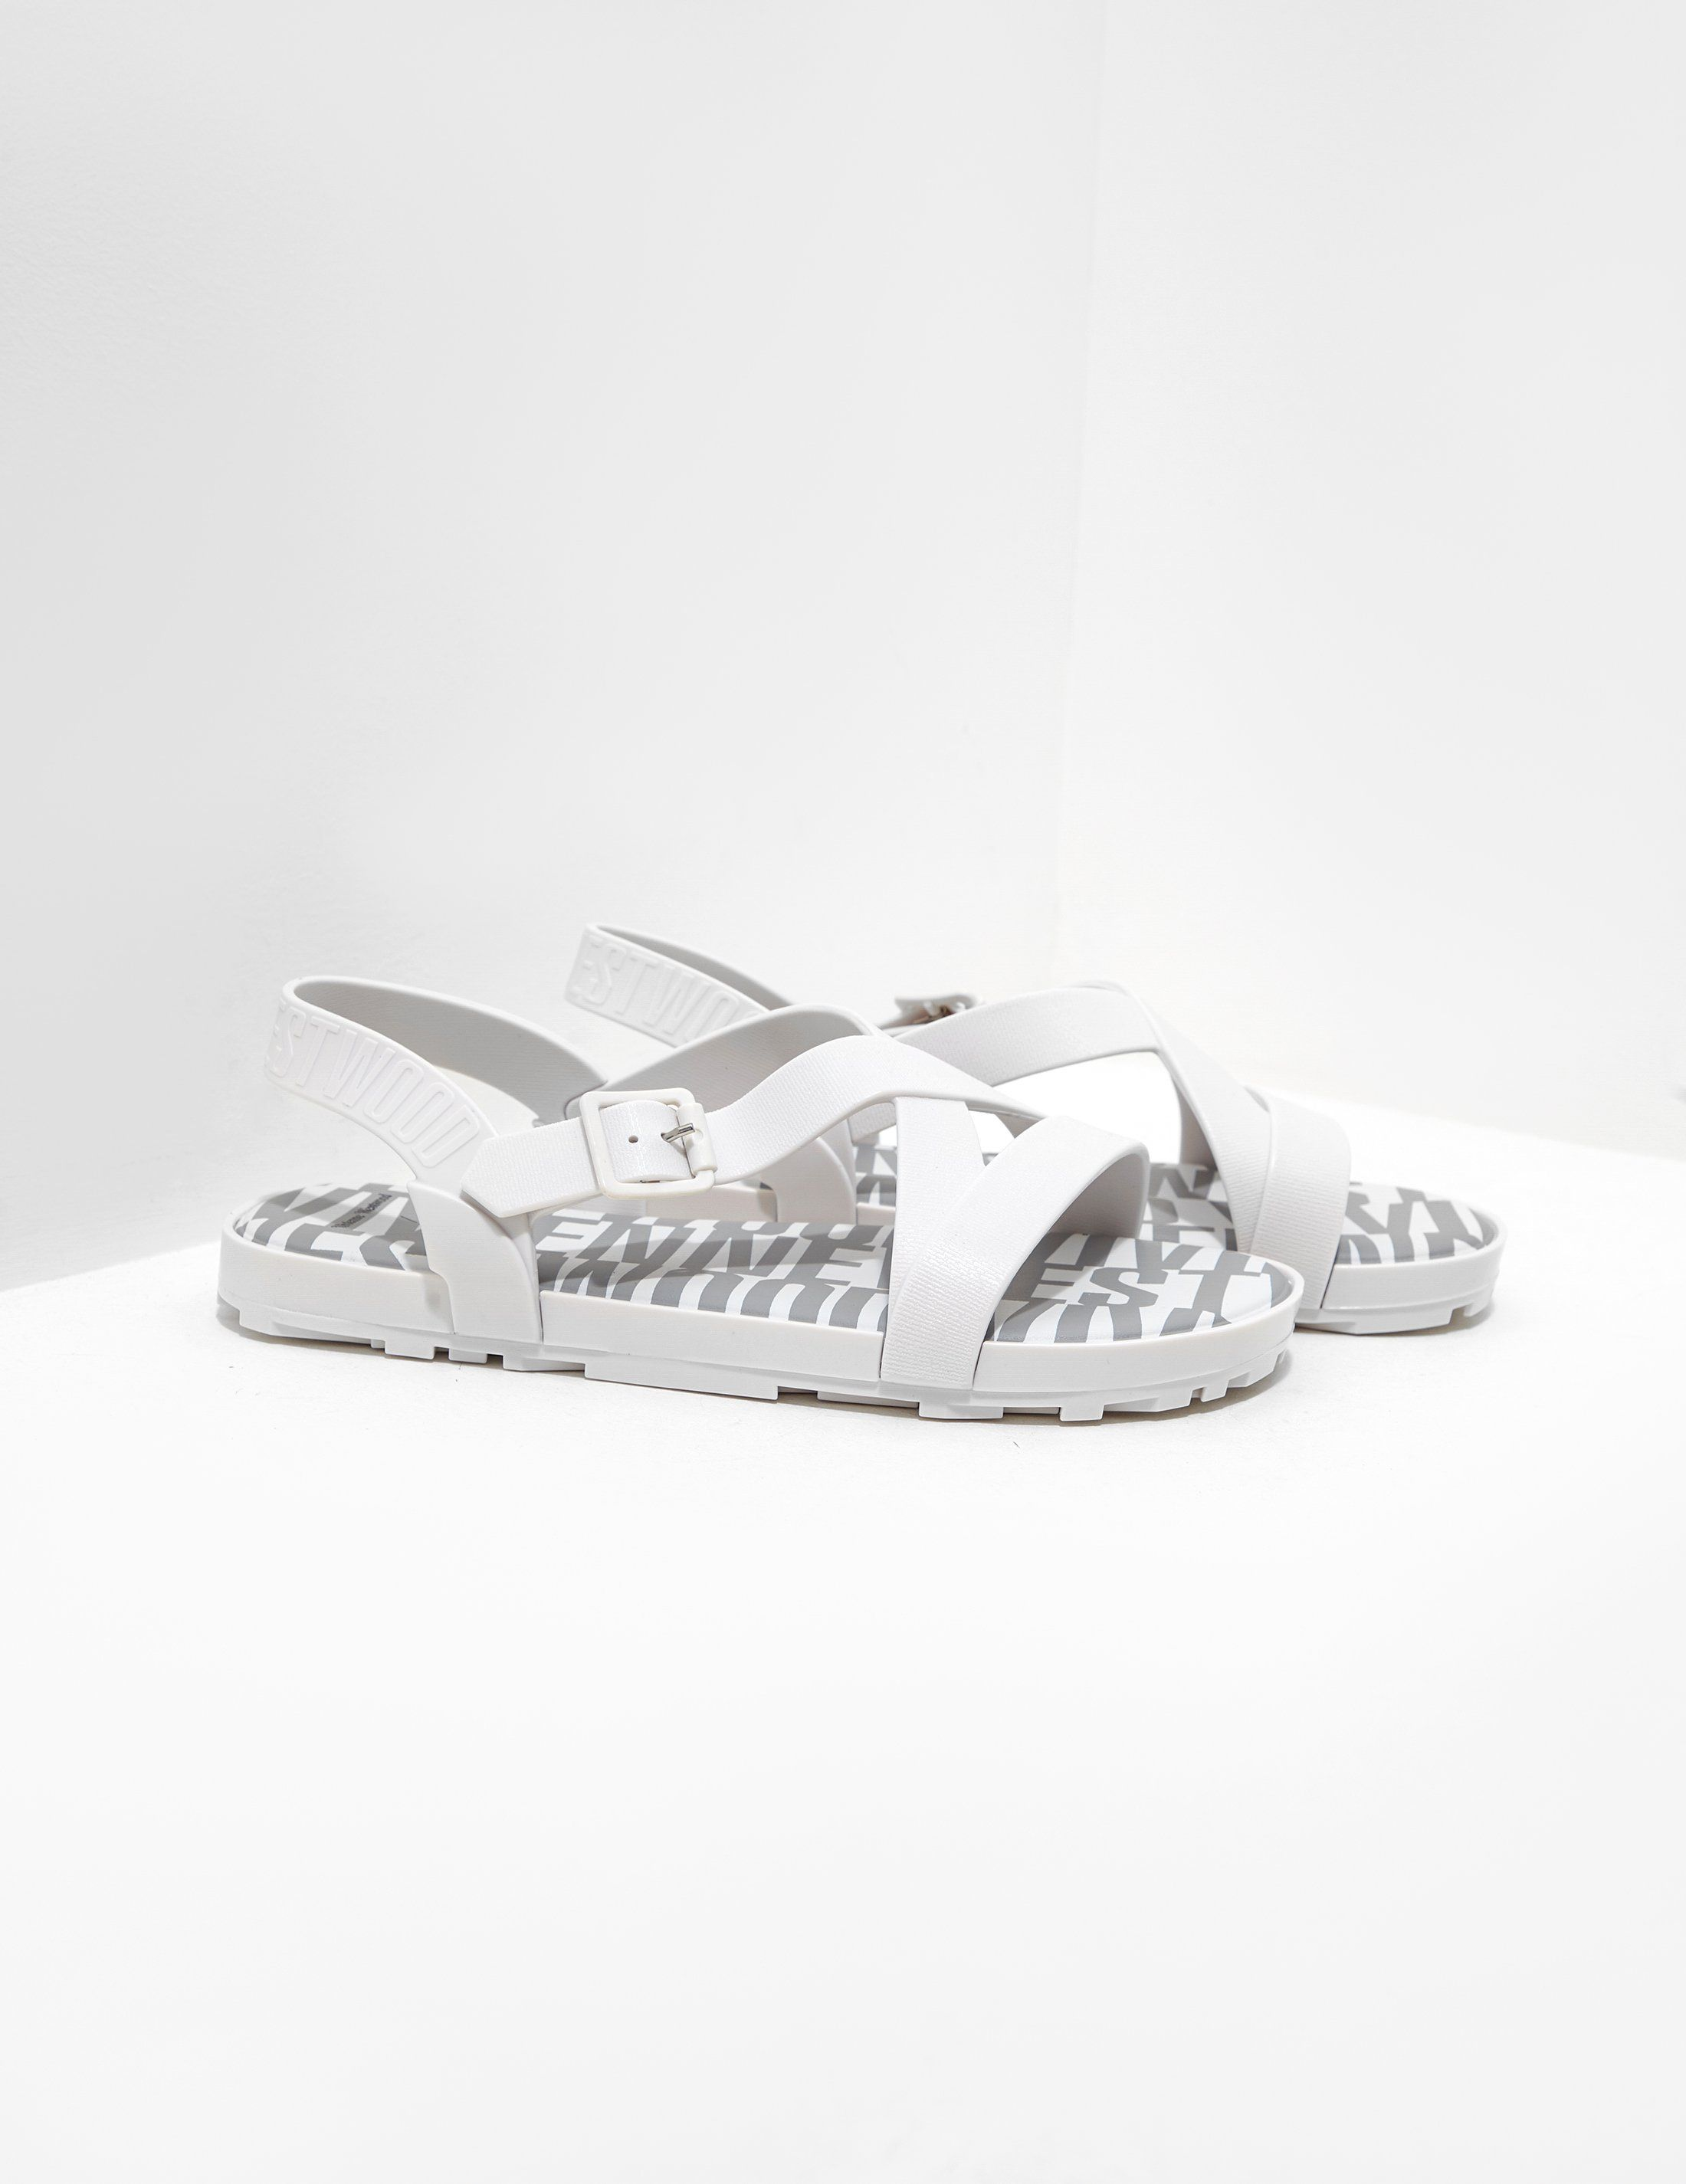 Melissa x Vivienne Westwood Hermanos Sandals - Exclusive